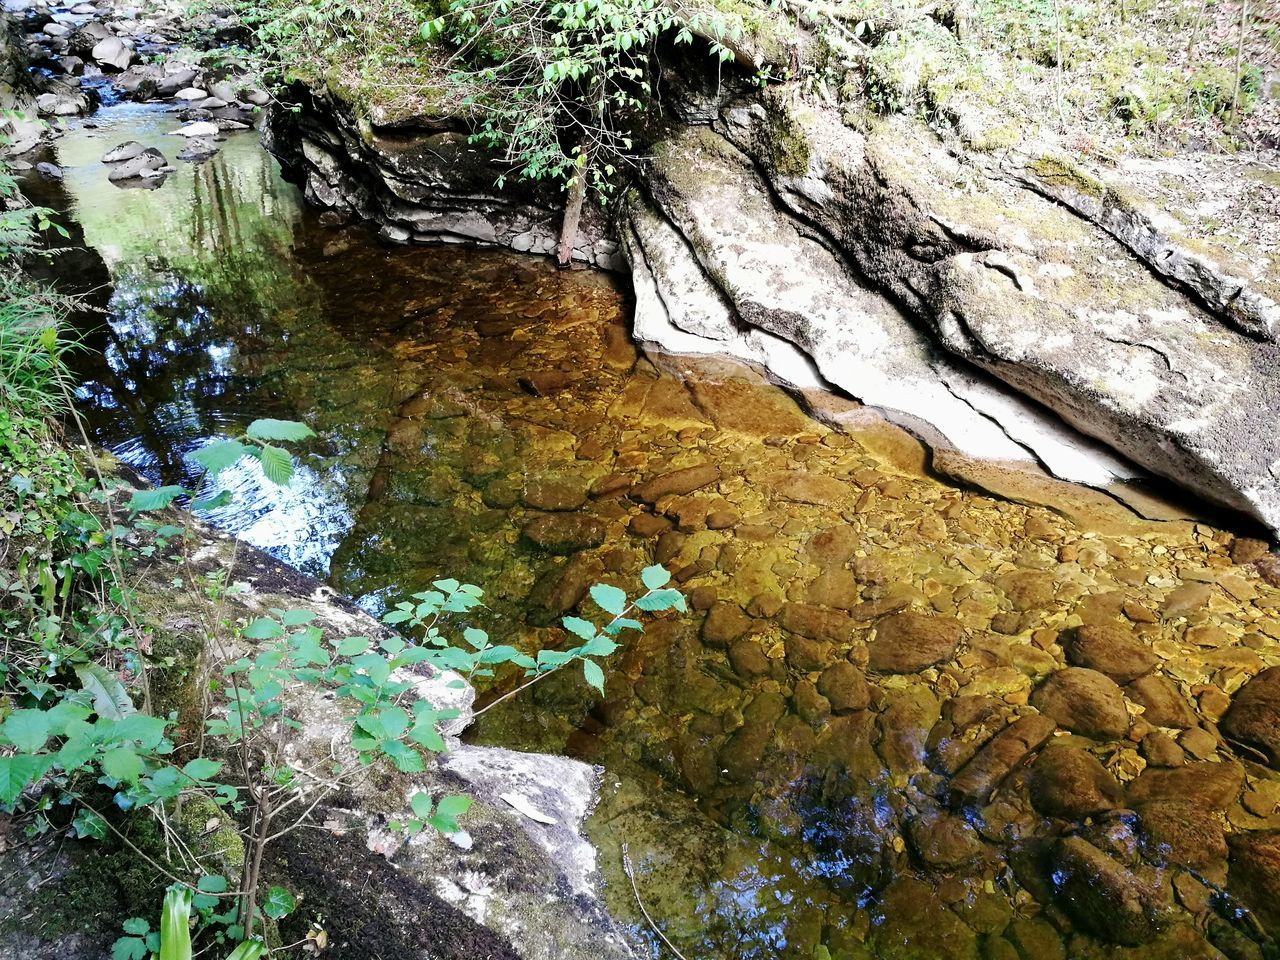 River View Water Reflections Freshness Spring Water Colorful Limestone Small River In Forest Beauty In Nature No People Outdoors Day High Angle View Yorkshire HuaweiP9